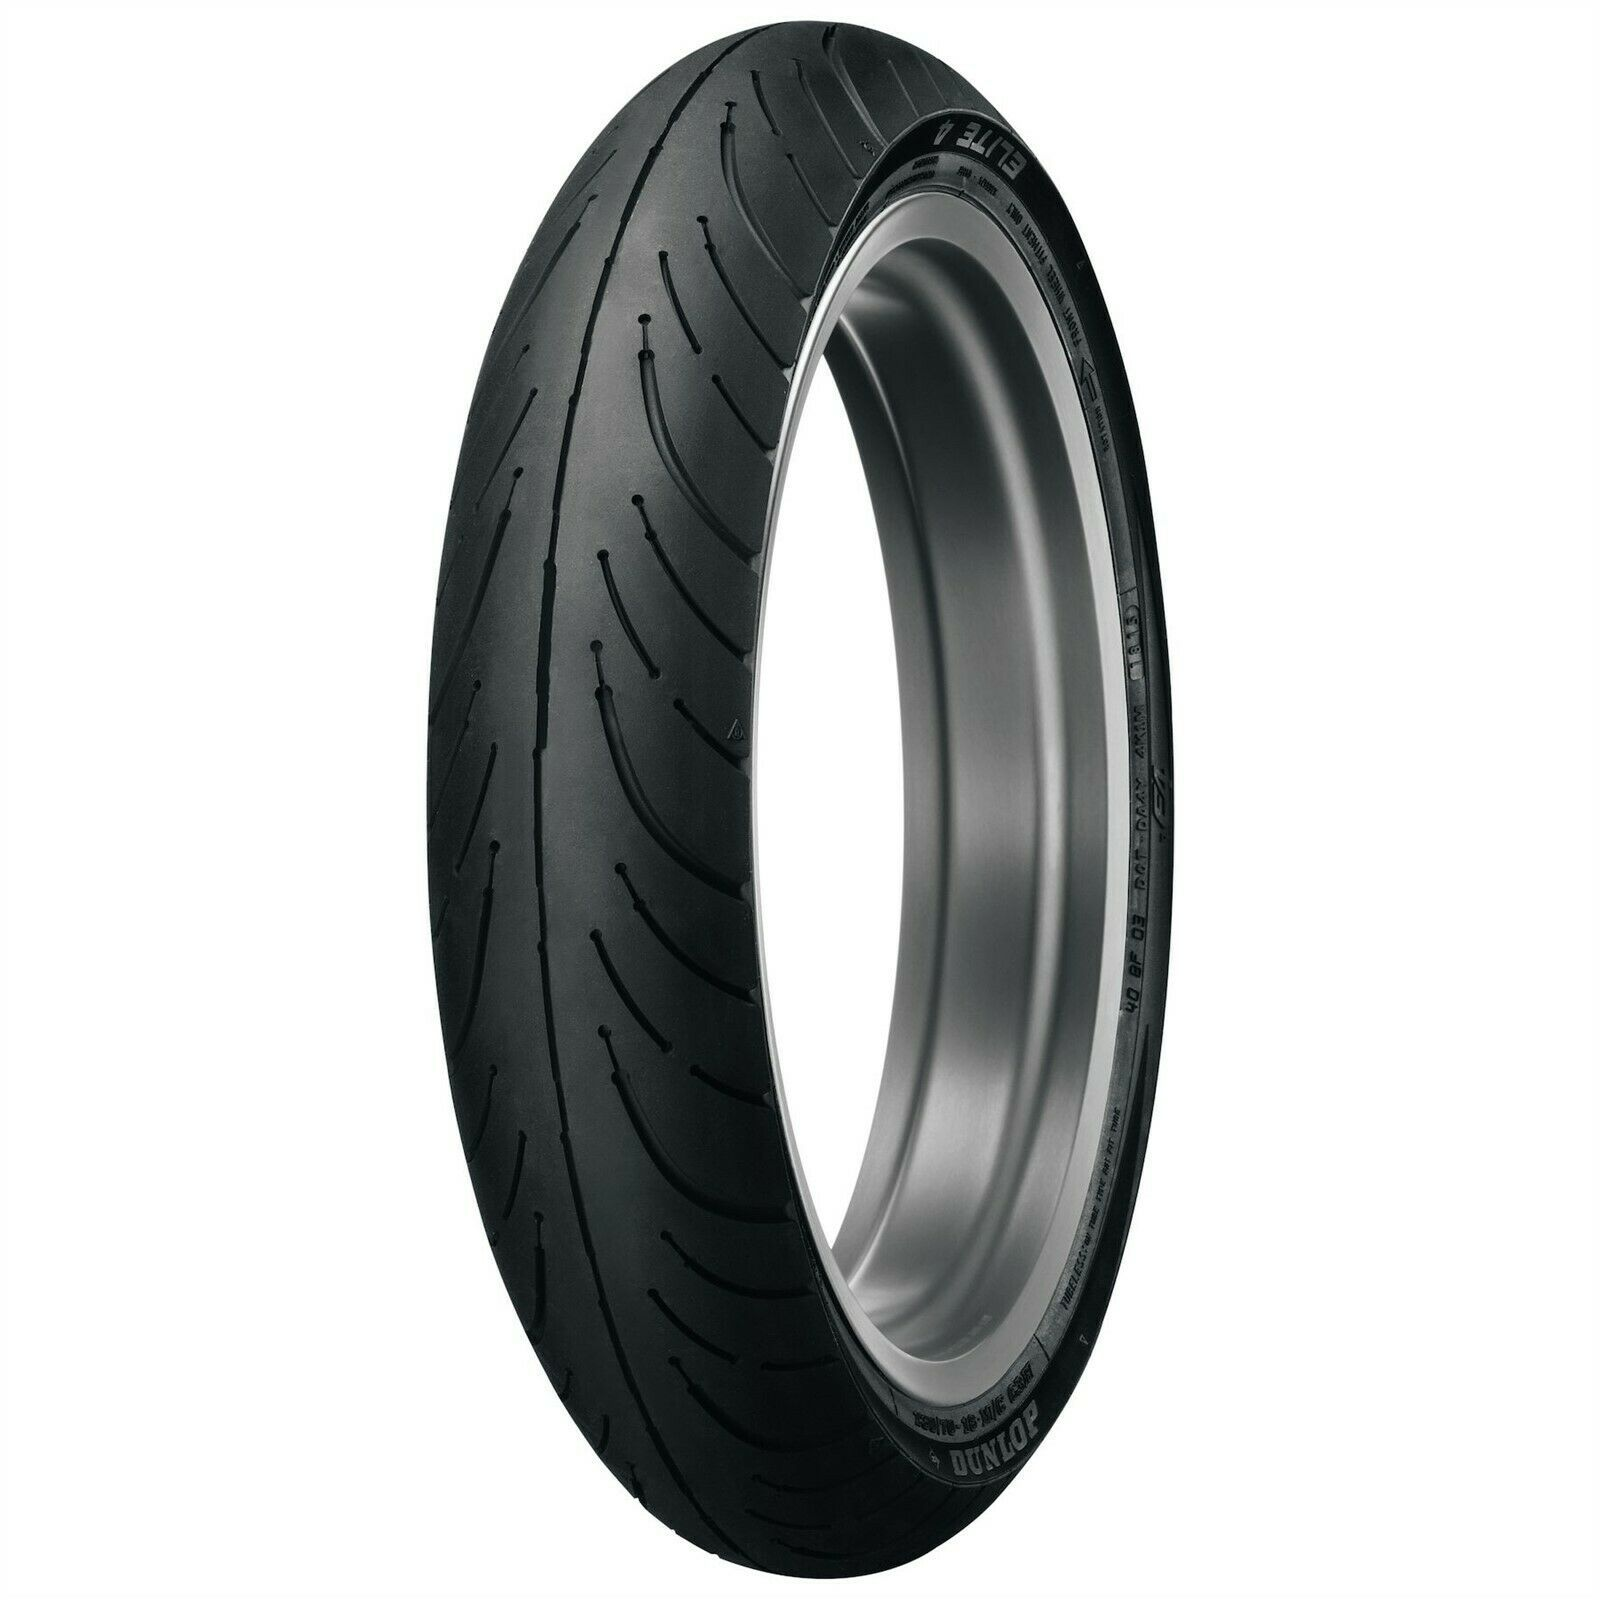 New Dunlop Elite 4 140/80-17 Bias Front Motorcycle Tire 69H High Mileage